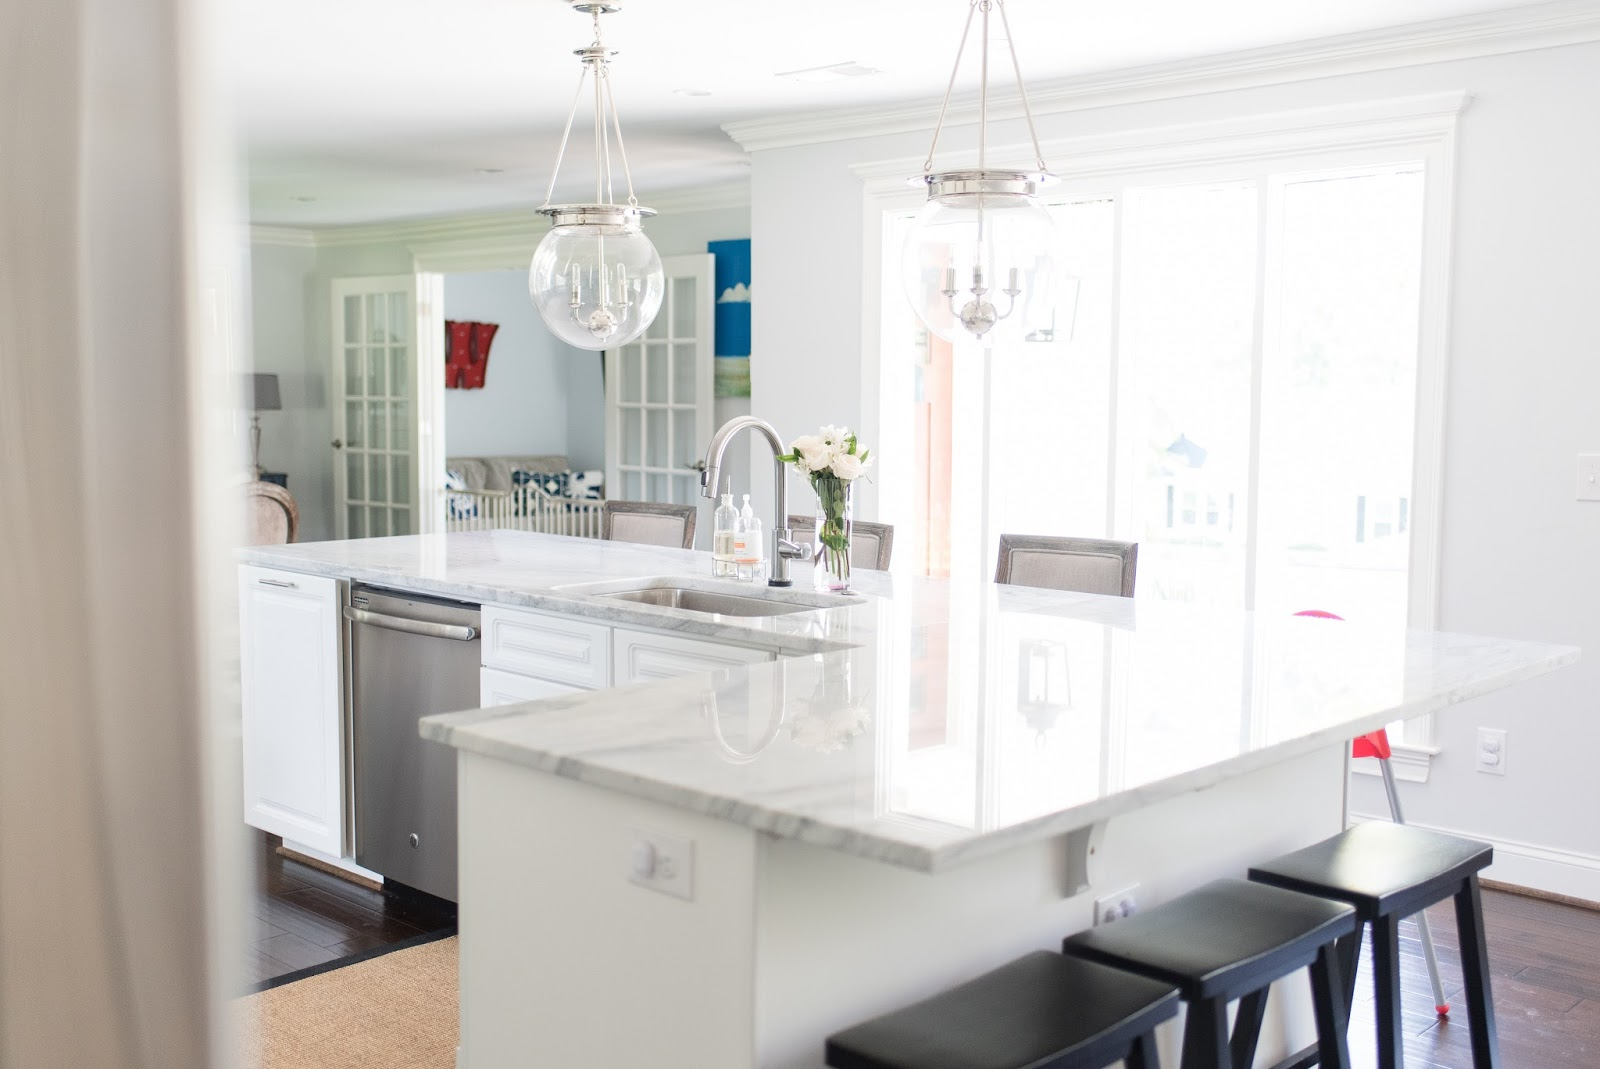 Reno Reveal: The Kitchen | Olive and Tate